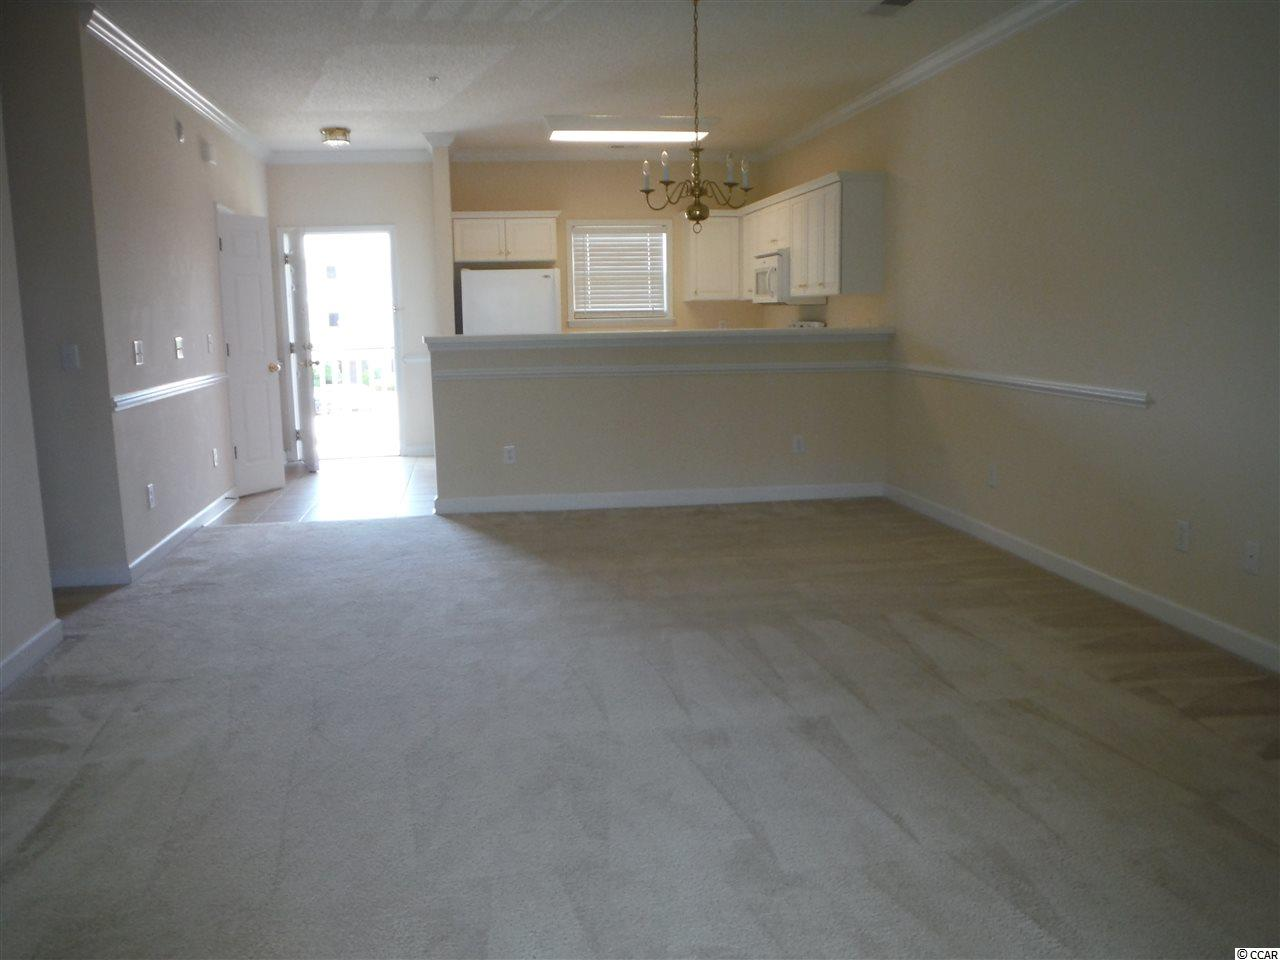 Contact your Realtor for this 2 bedroom condo for sale at  Heatherstone II, Bldg. 64